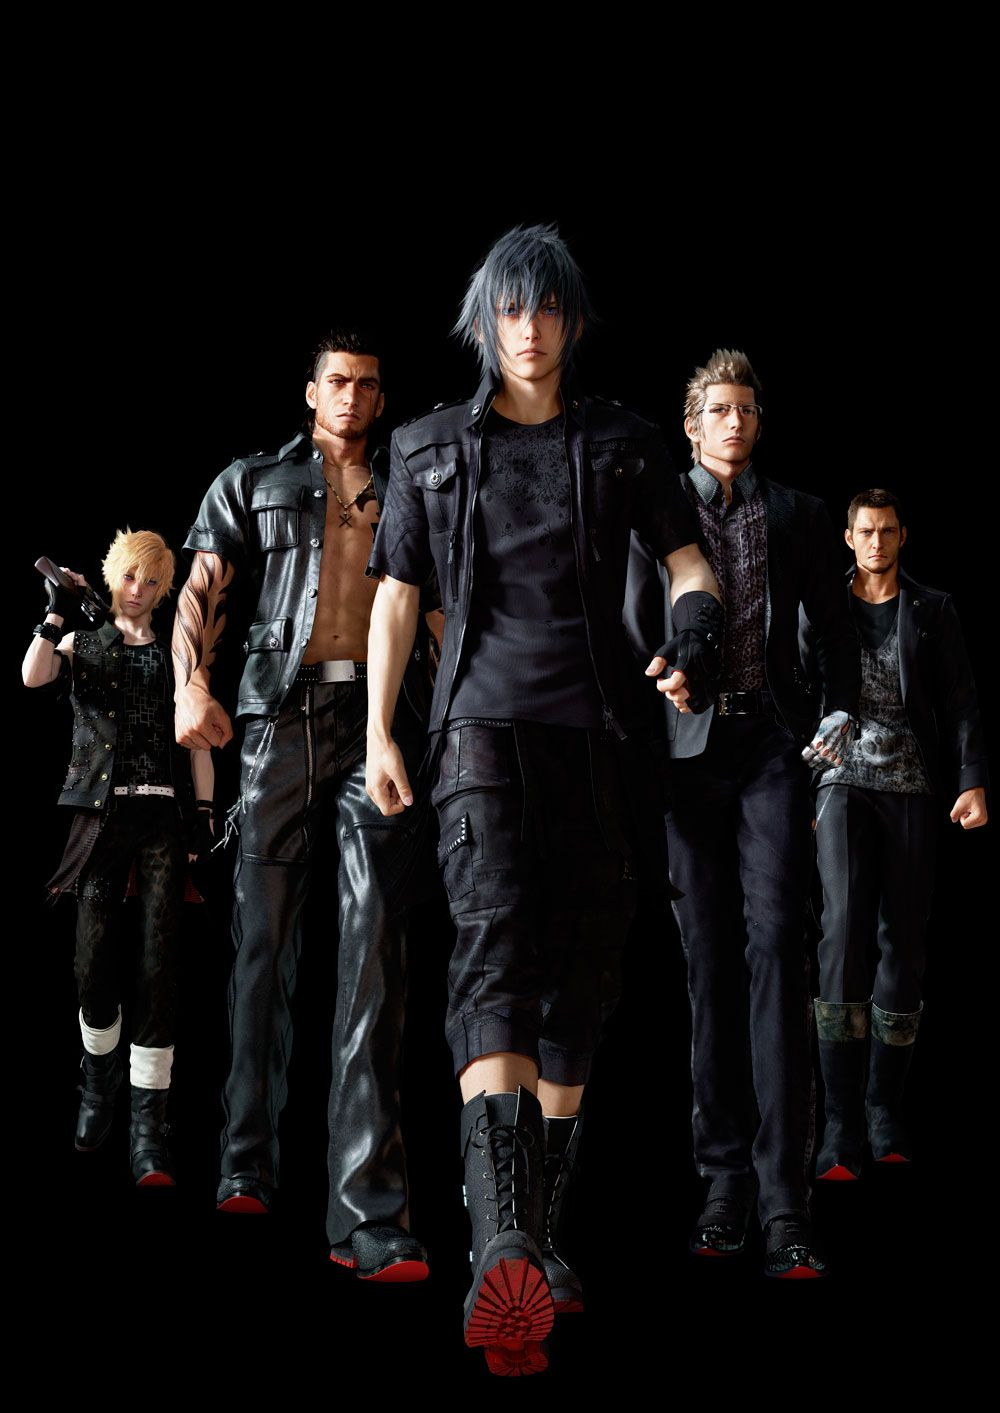 1000+ images about Final Fantasy on Pinterest